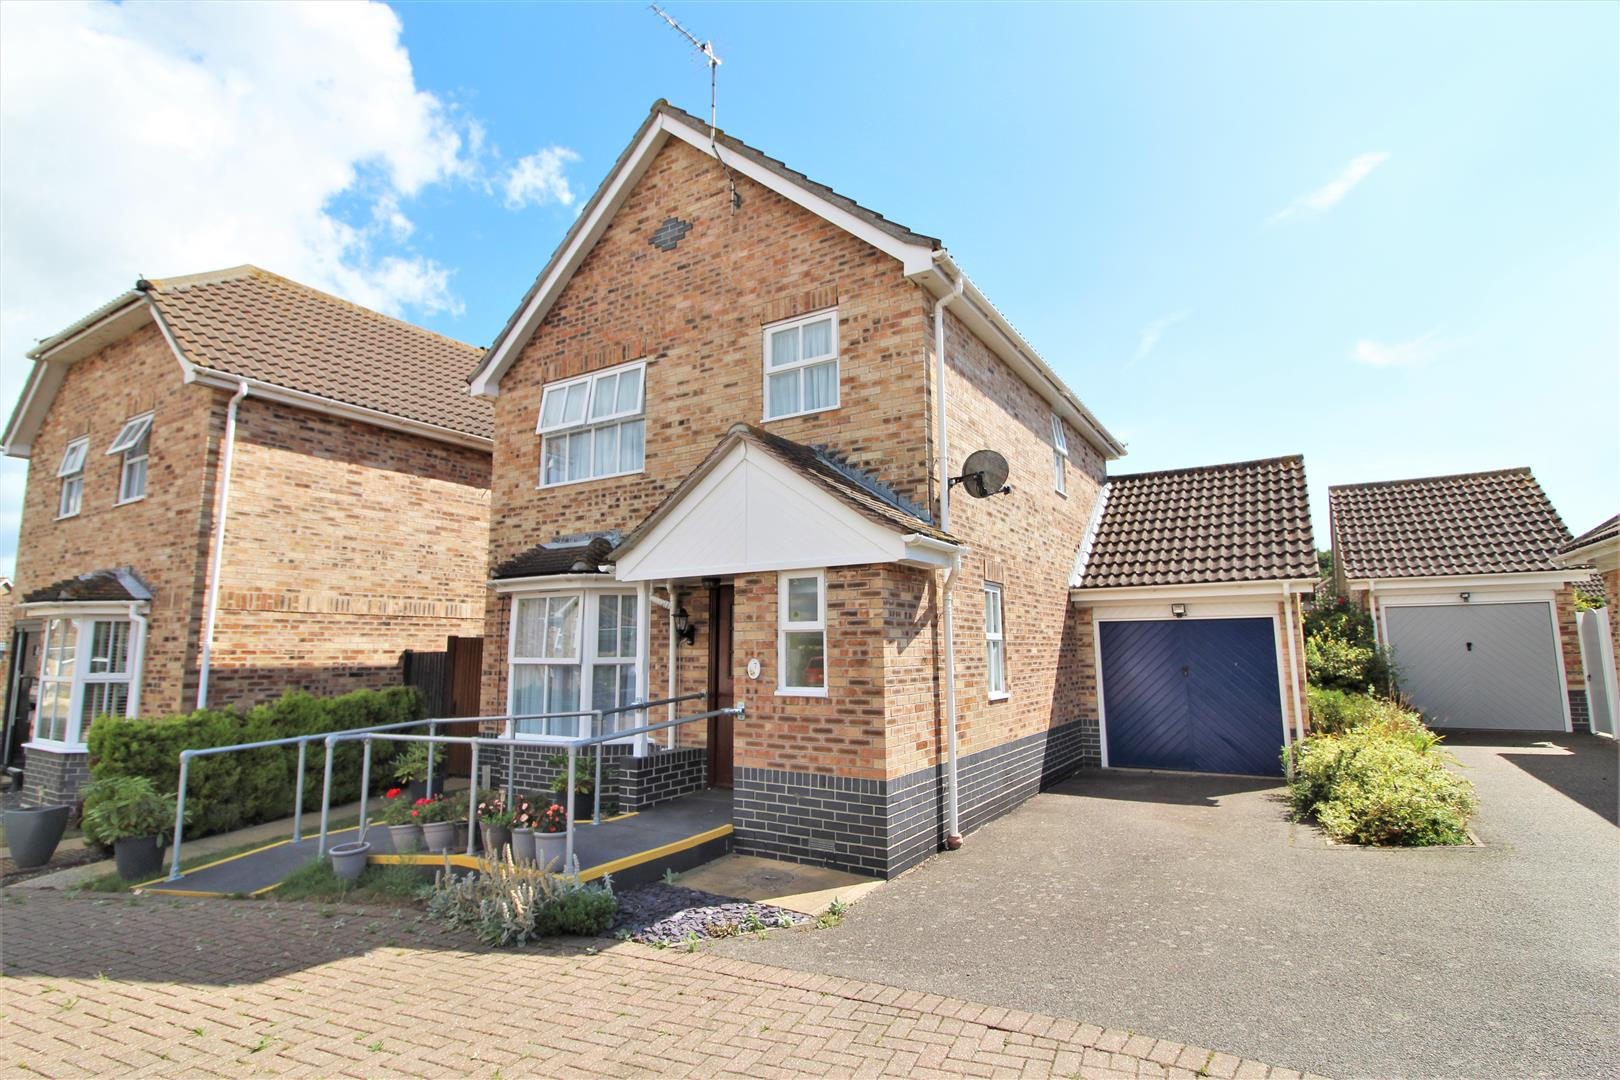 Avocet Close, Kirby Cross, Essex, CO13 0UX